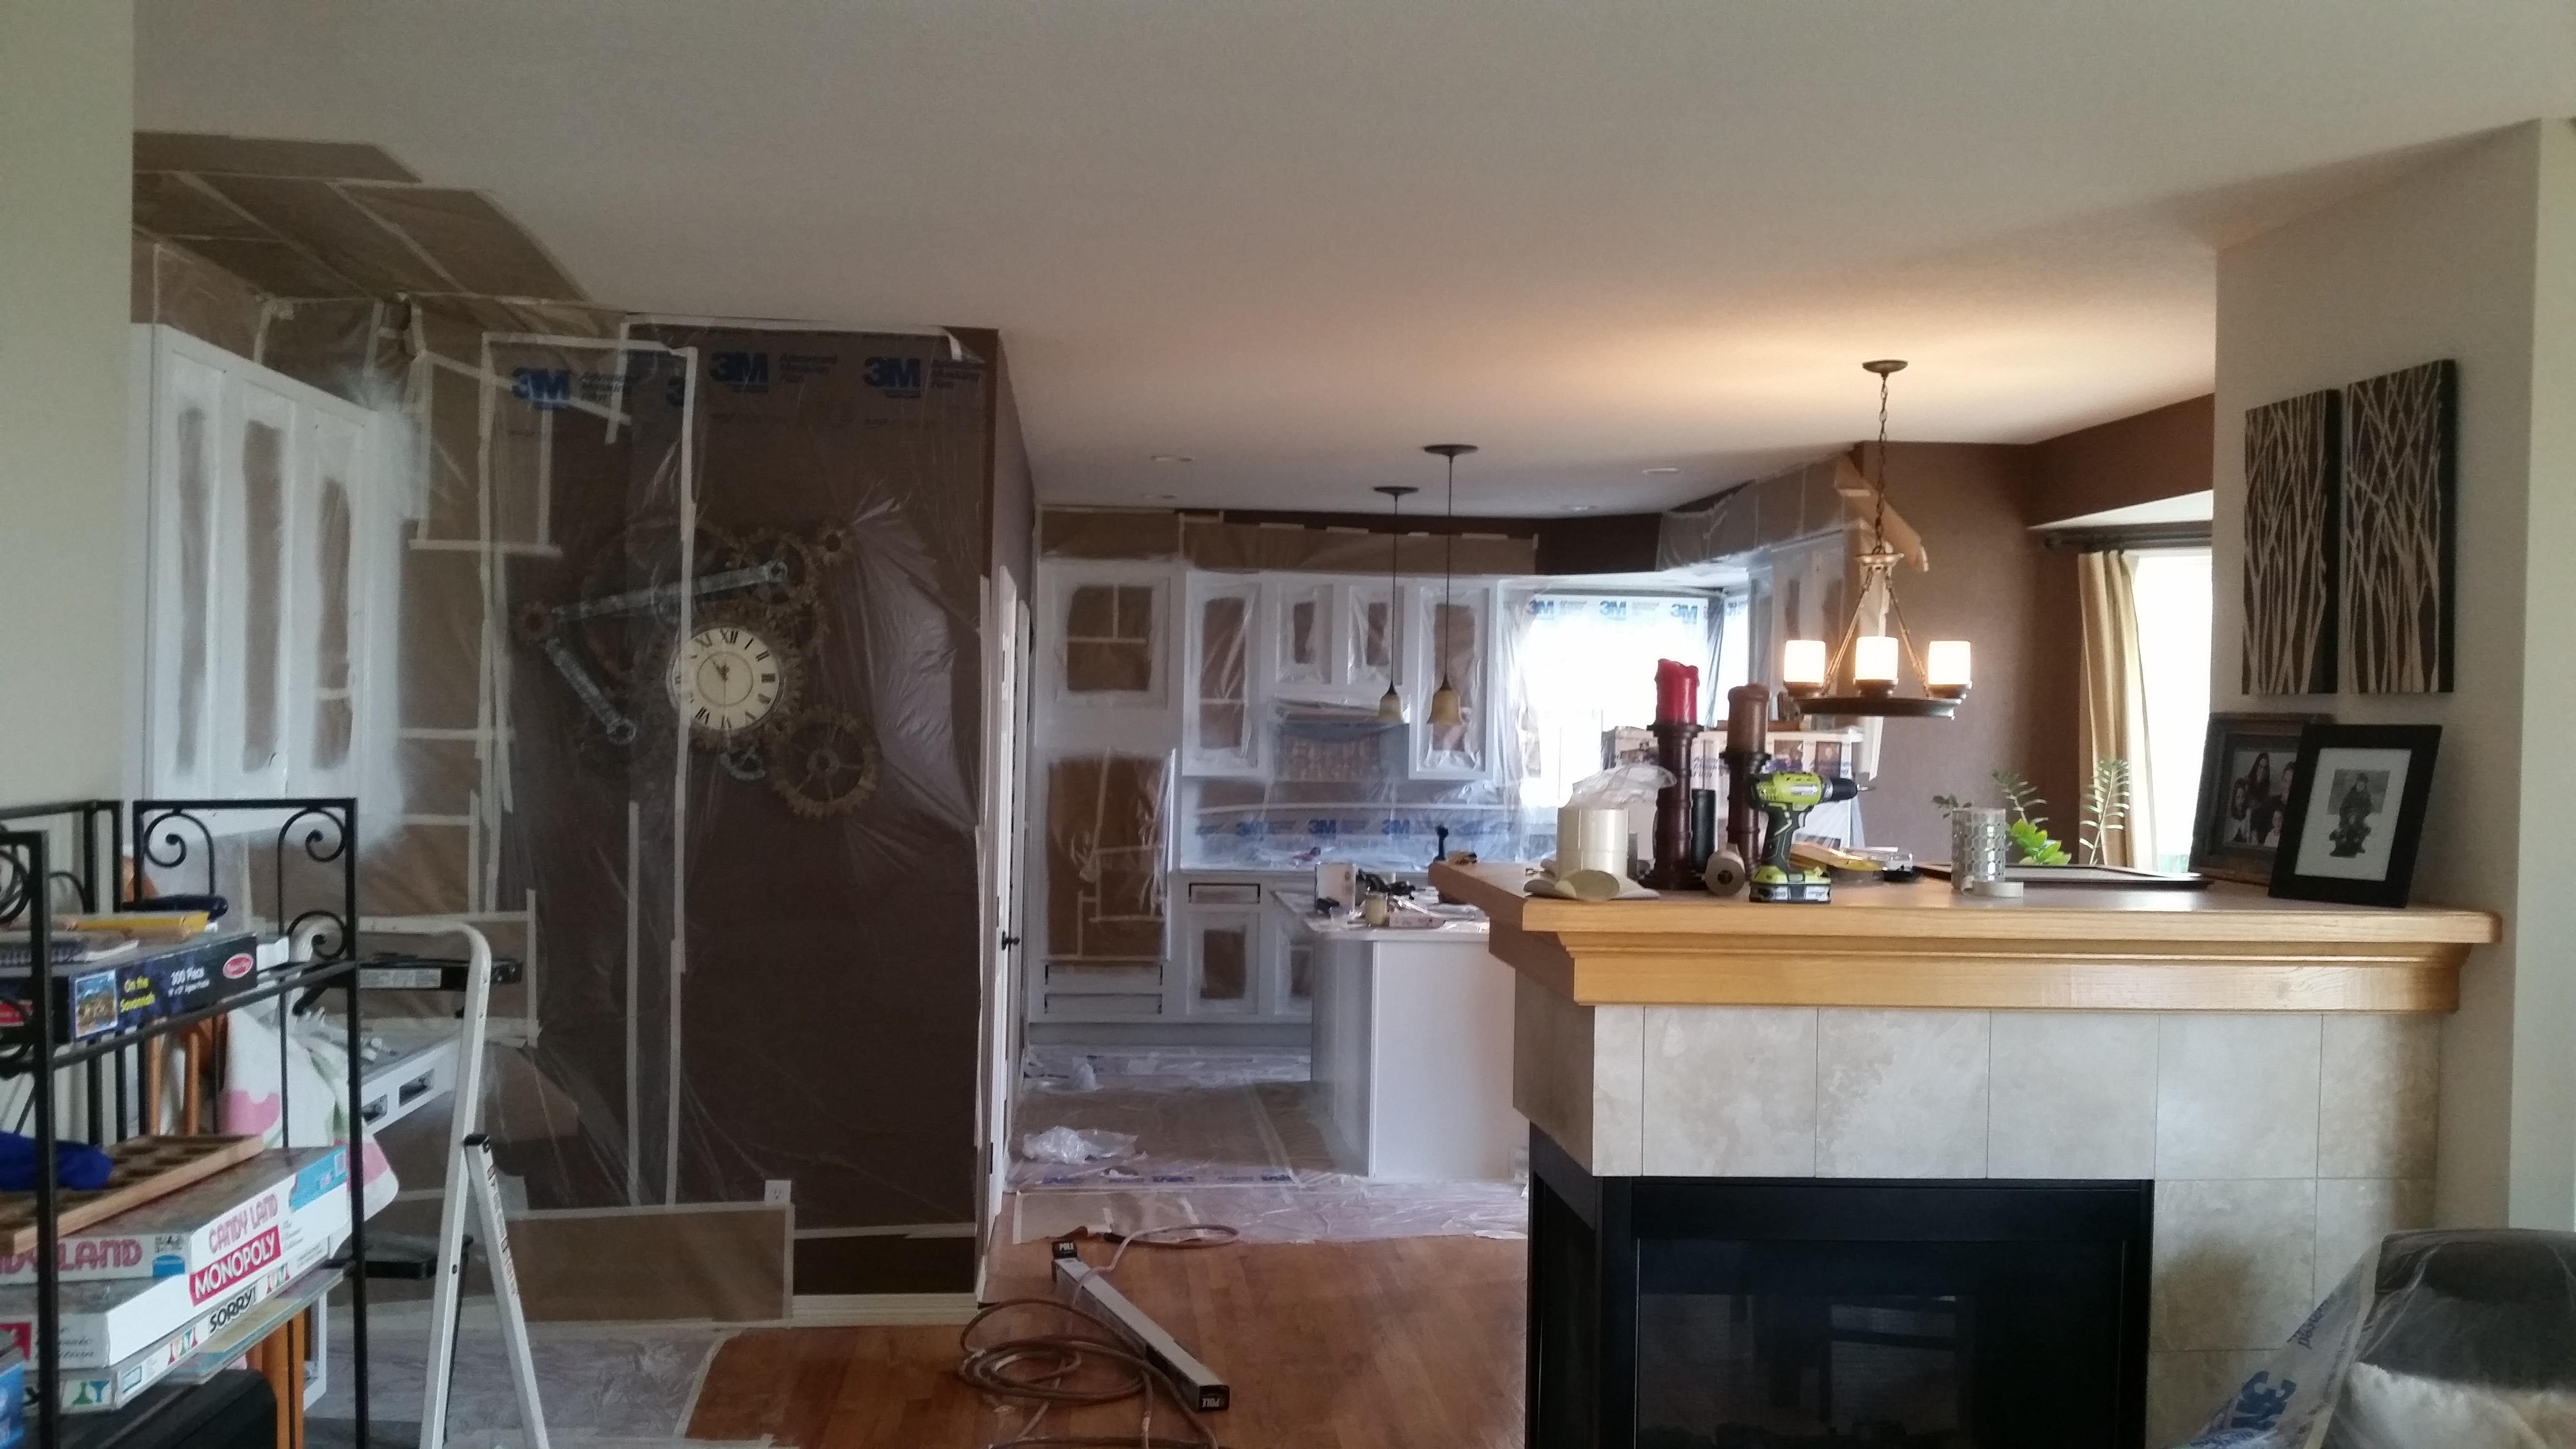 painting contractors denver save today aaa affordable painting